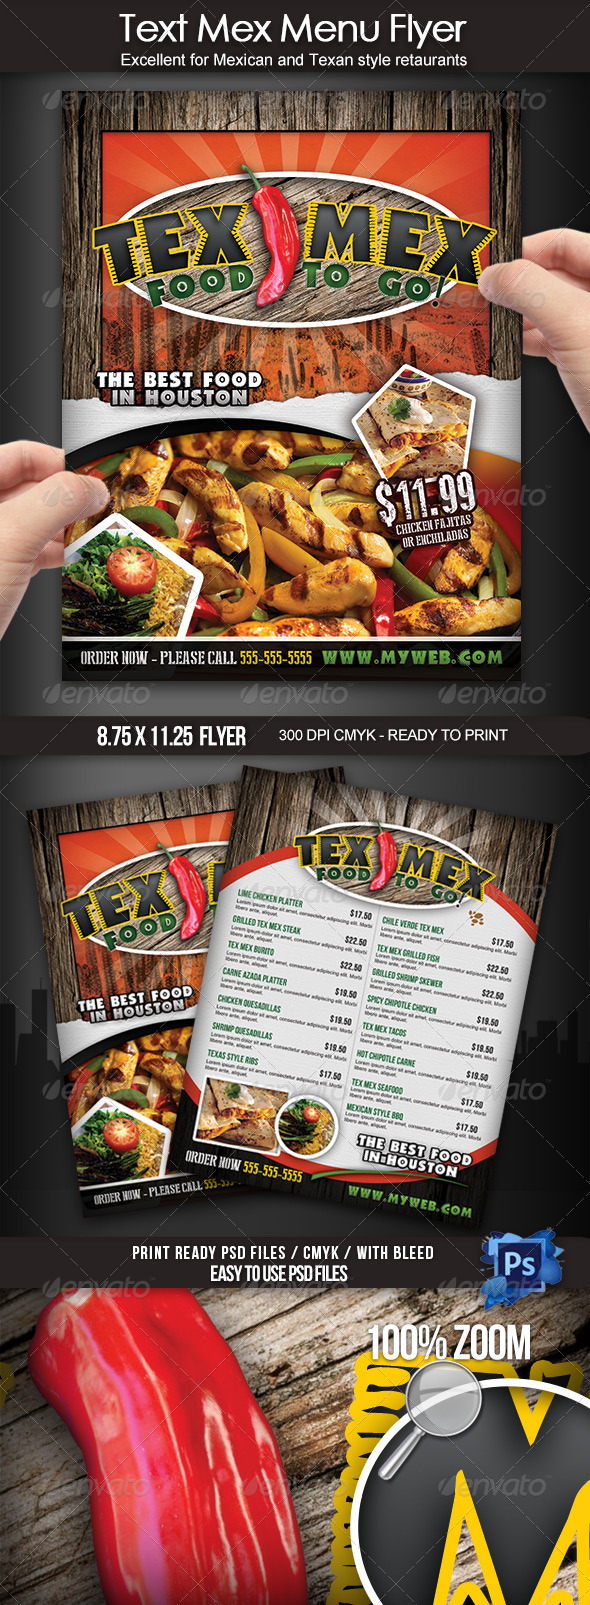 Tex Mex Menu Flyer - Food Menus Print Templates